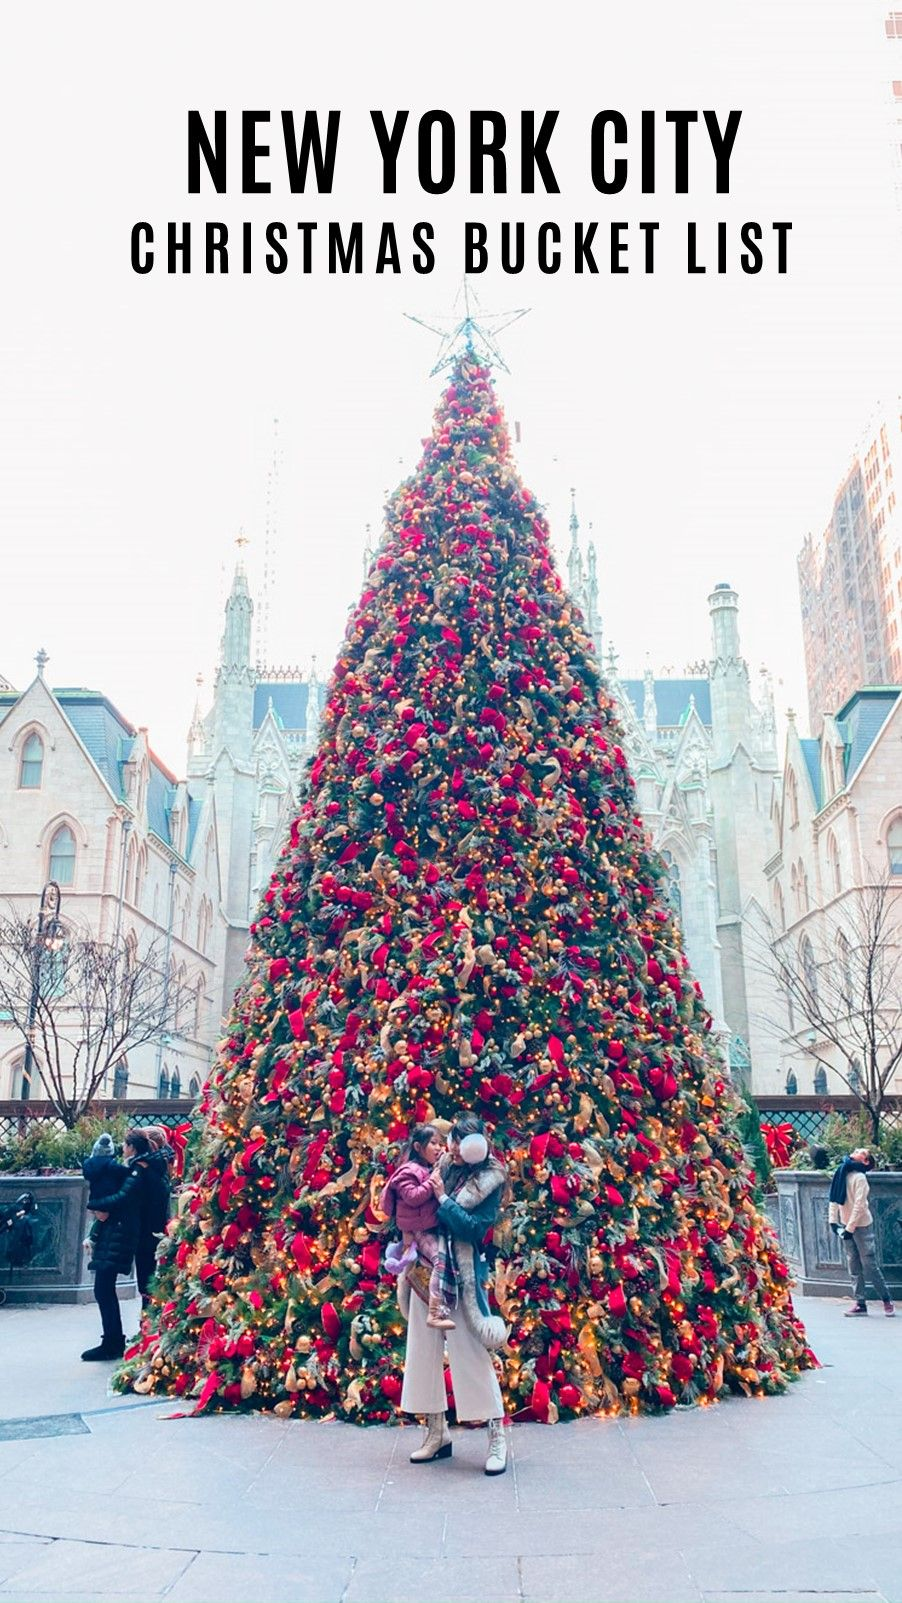 Things To Do On Christmas Day In Nyc 2020 New York in 2020 | New york travel guide, Nyc travel guide, North